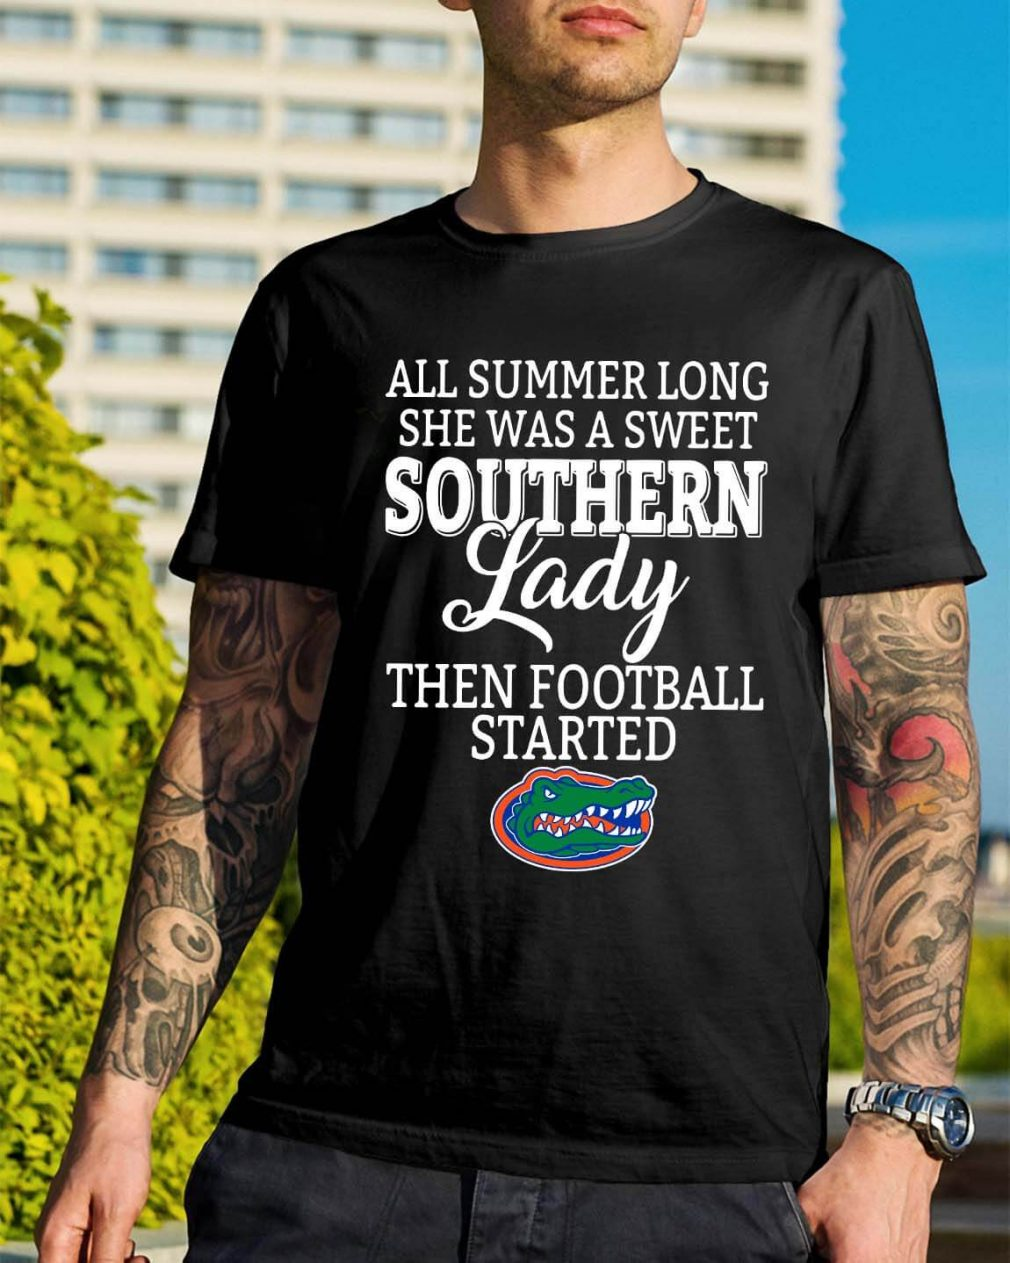 Florida Gators all summer long she was a sweet Southern lady shirt